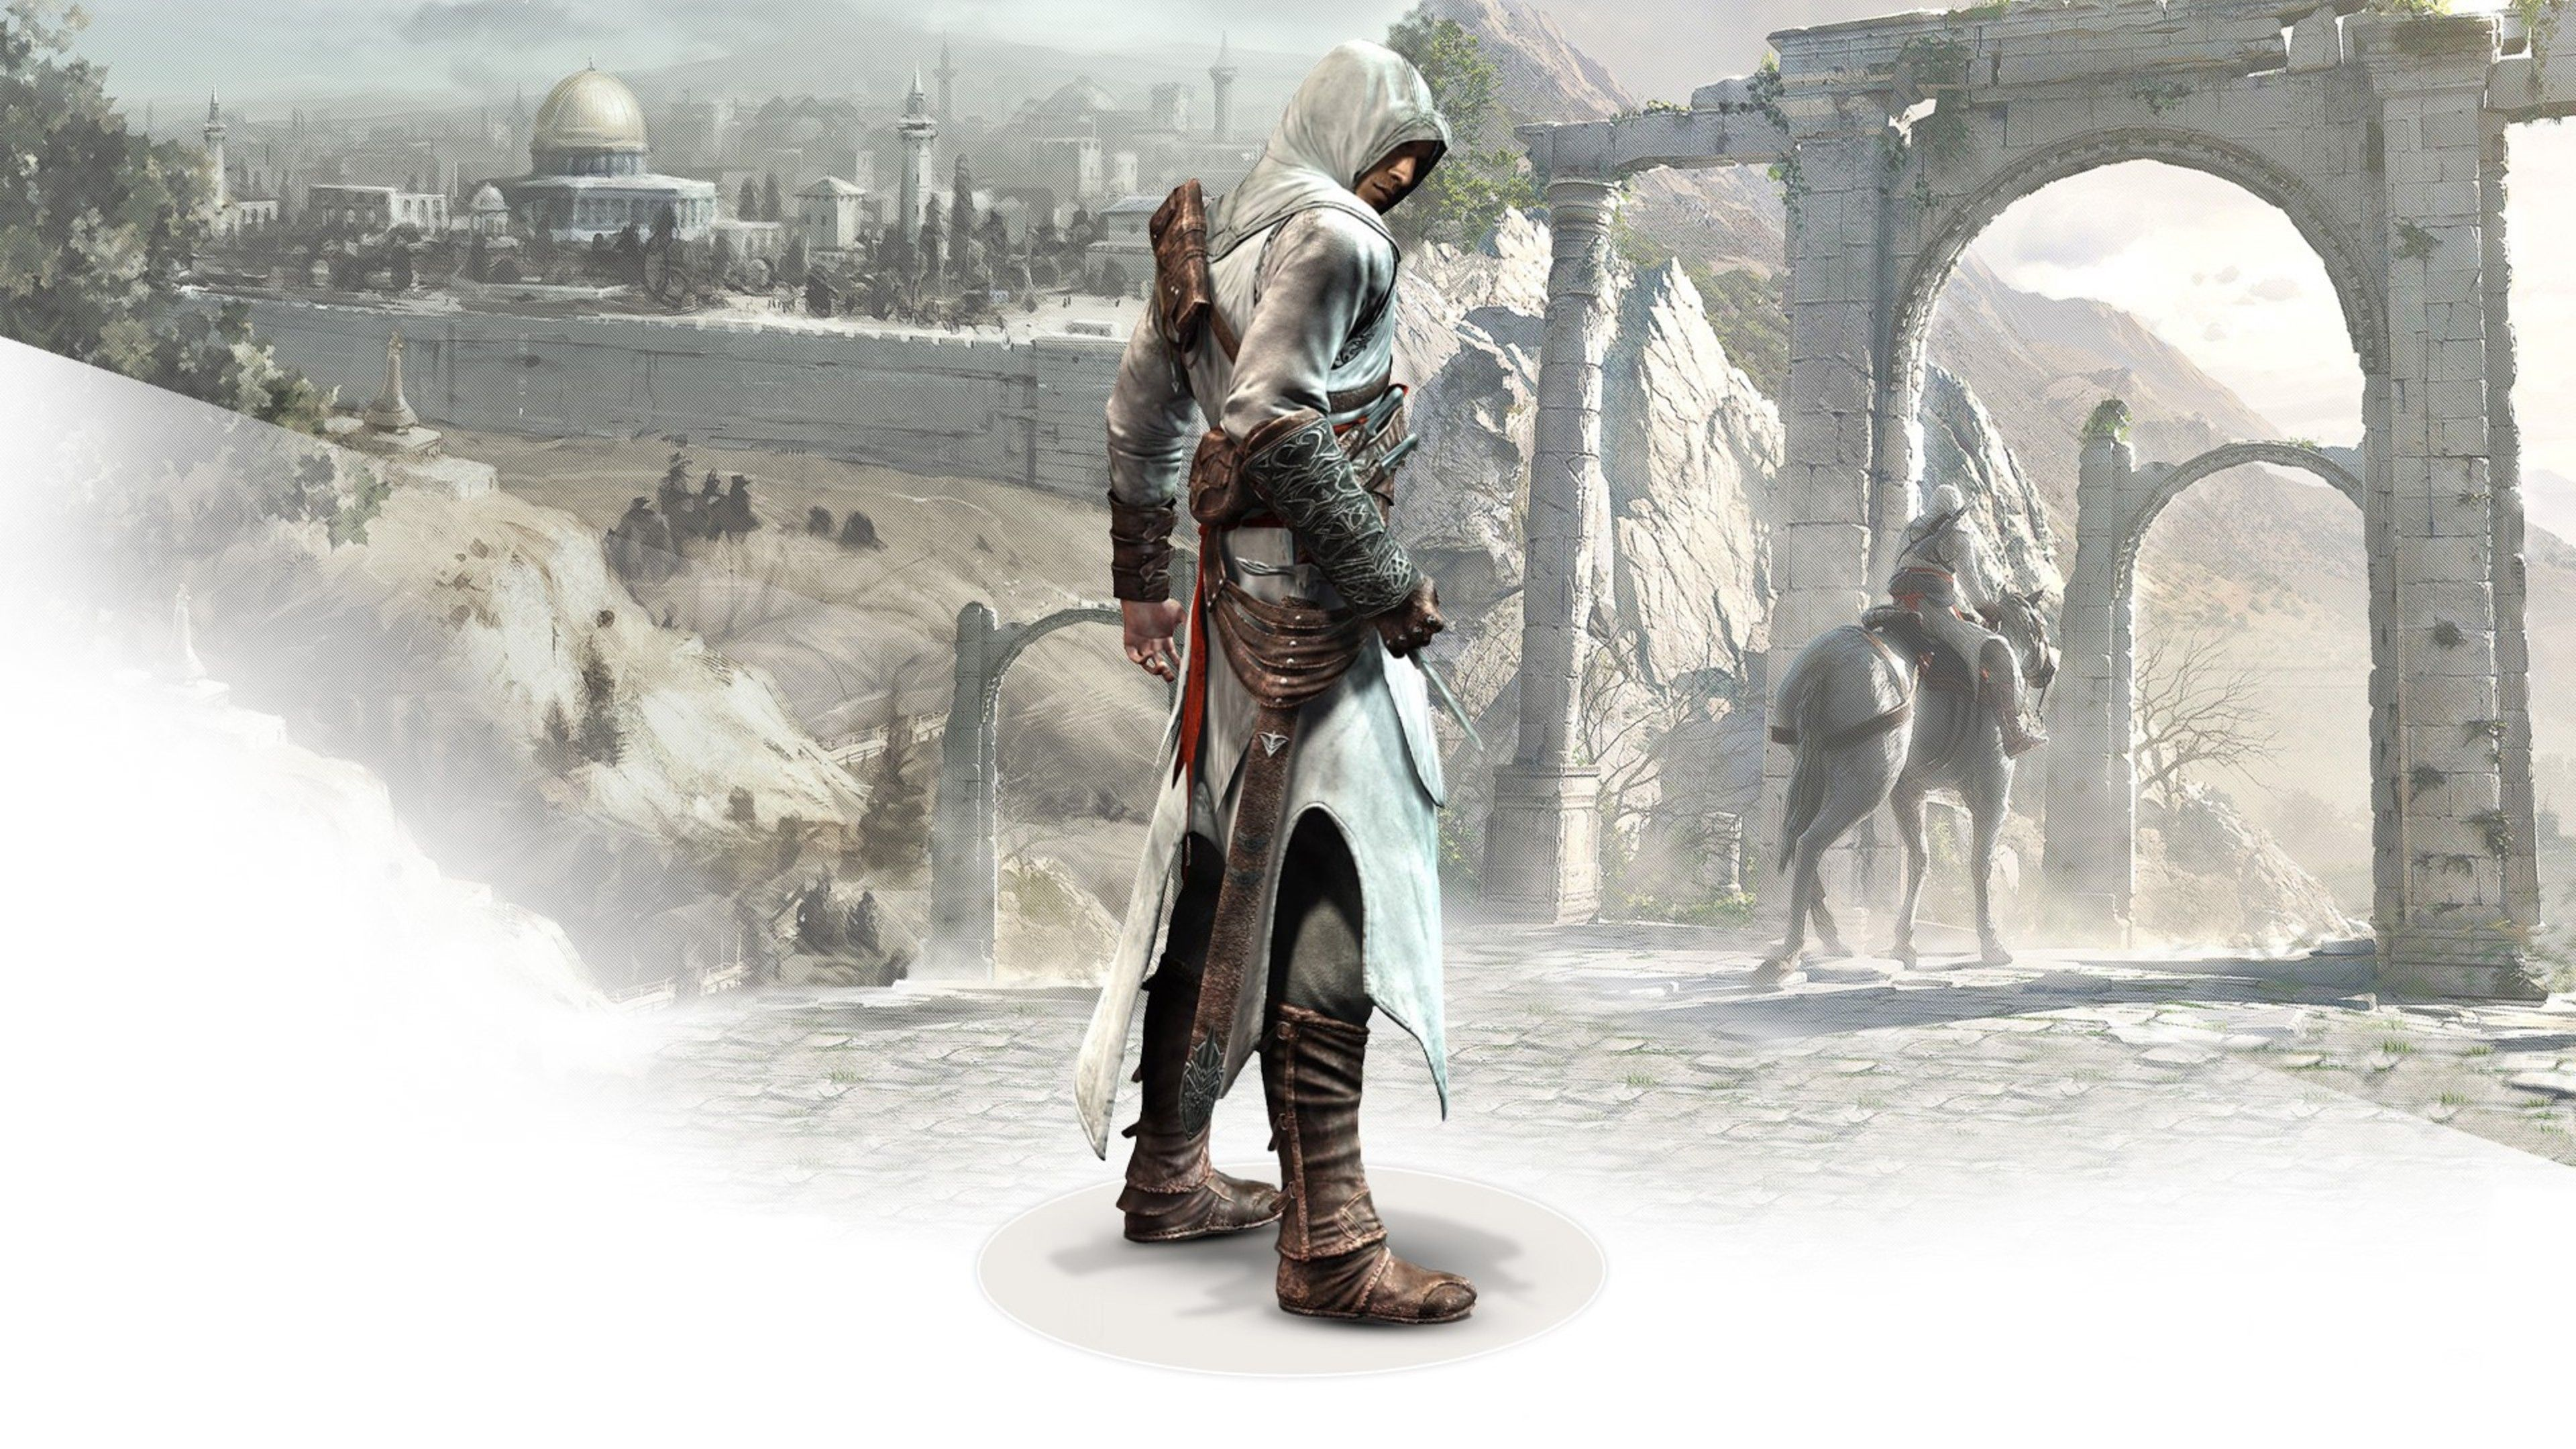 Altair In Assassins Creed Xbox Games Wallpapers Ps Games Wallpapers Pc Games Wallpapers Games Creed Wallpaper Pc Games Wallpapers Assassins Creed Wallpapers